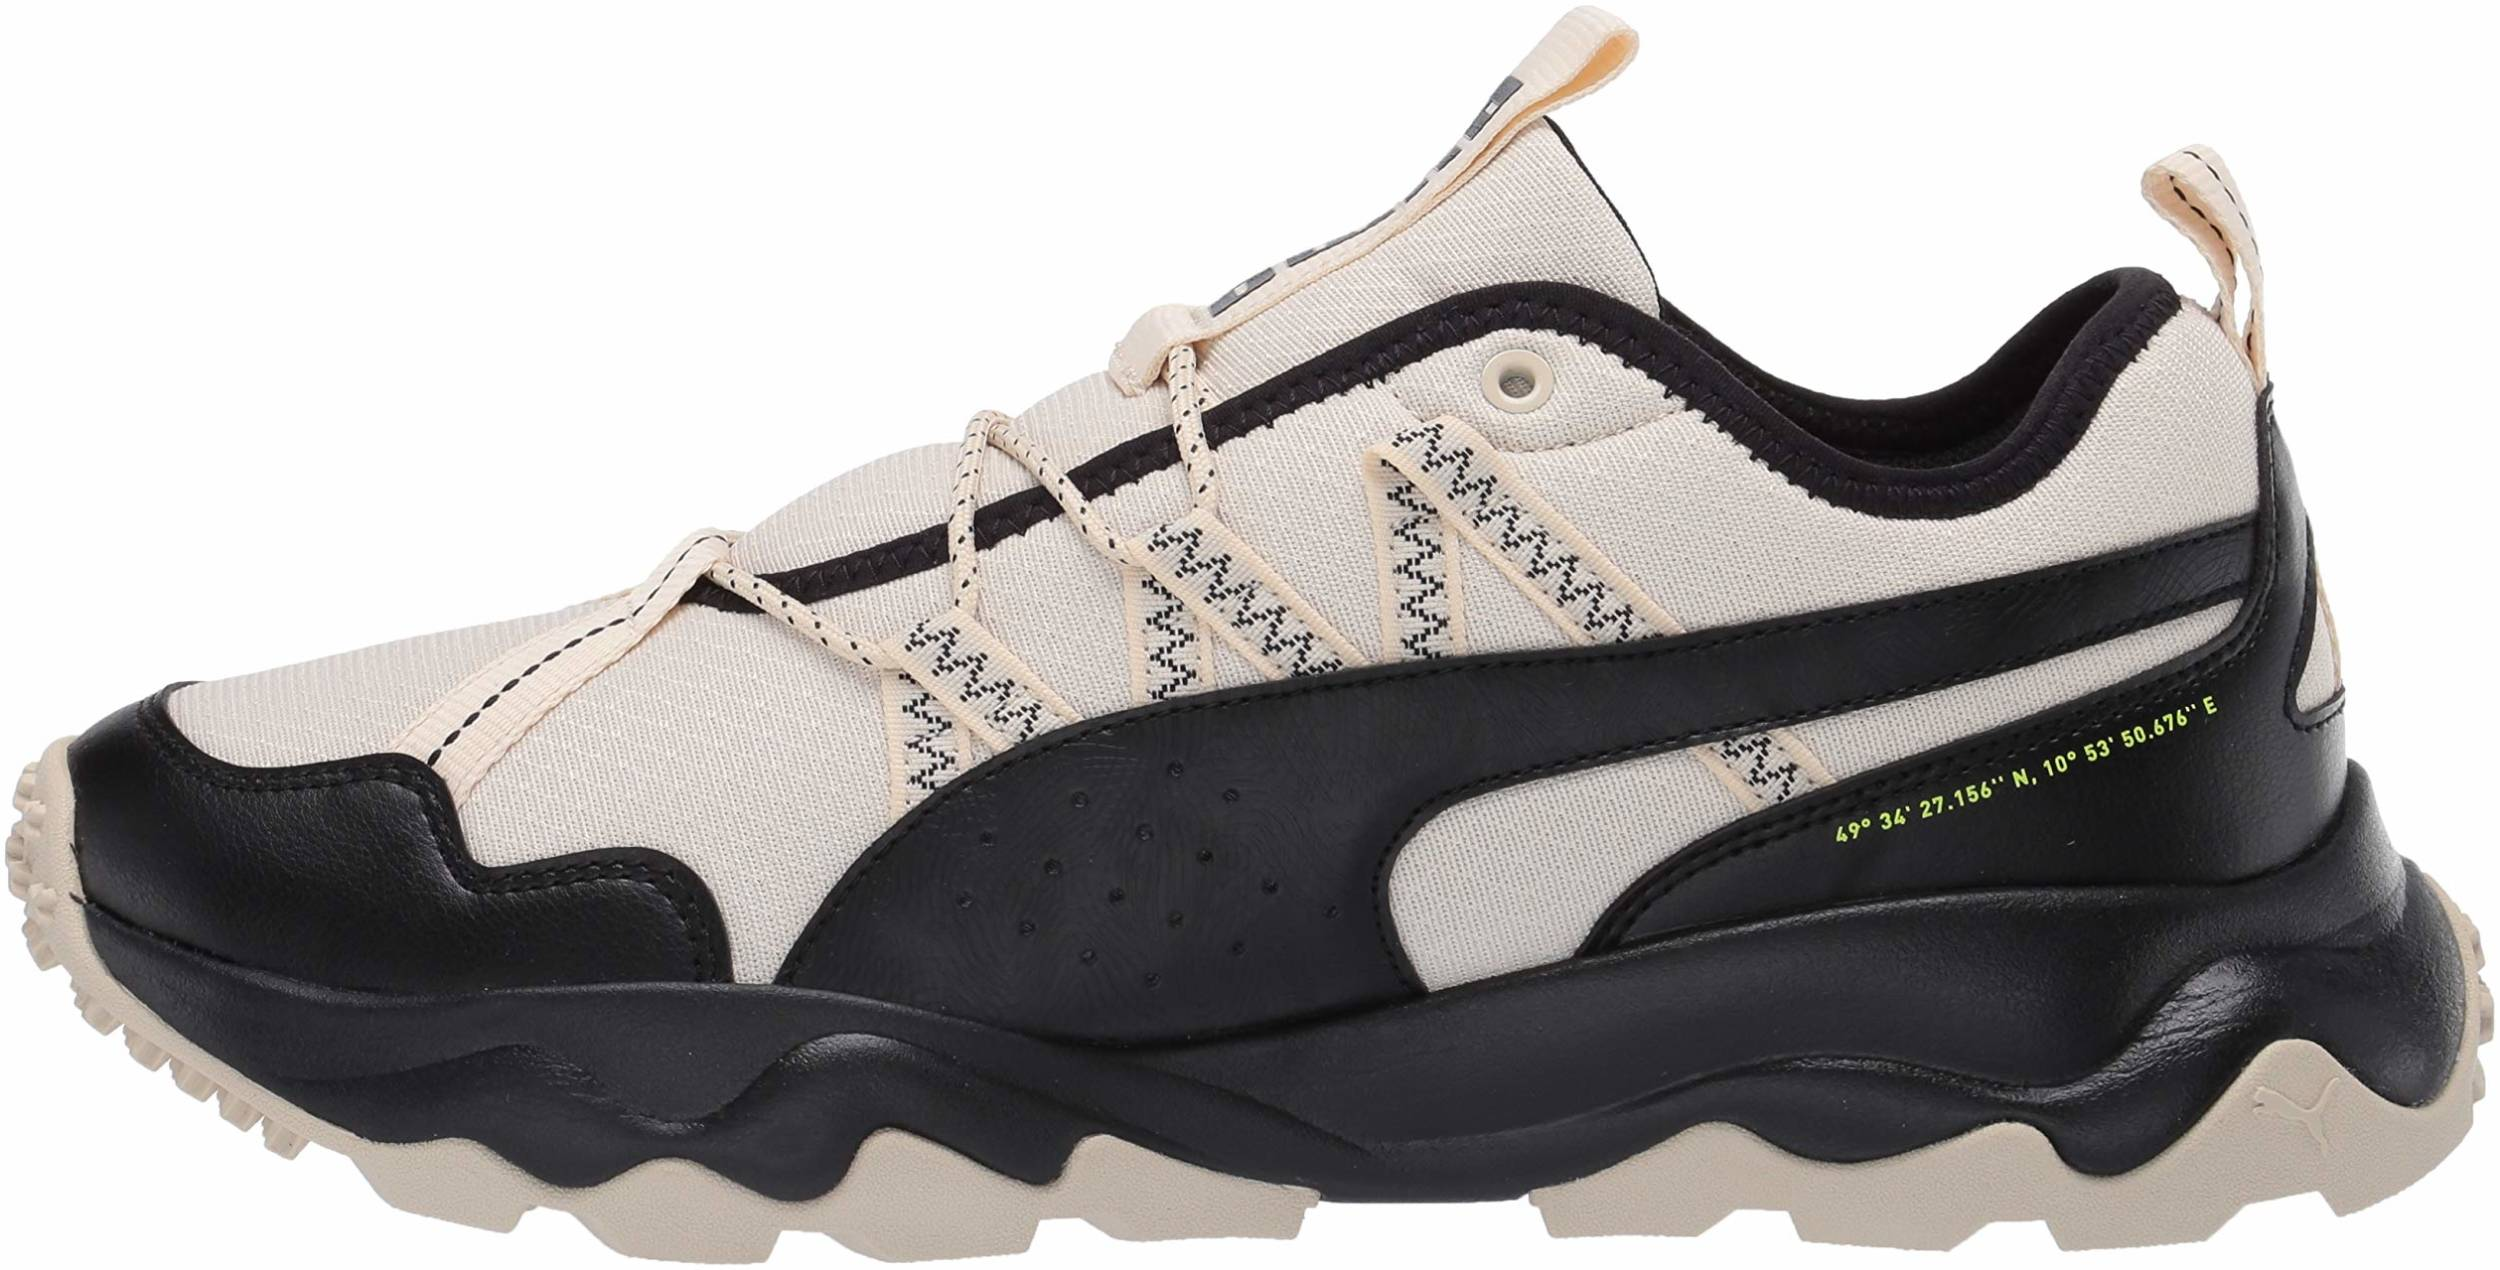 Only $50 + Review of Puma Ember Trail